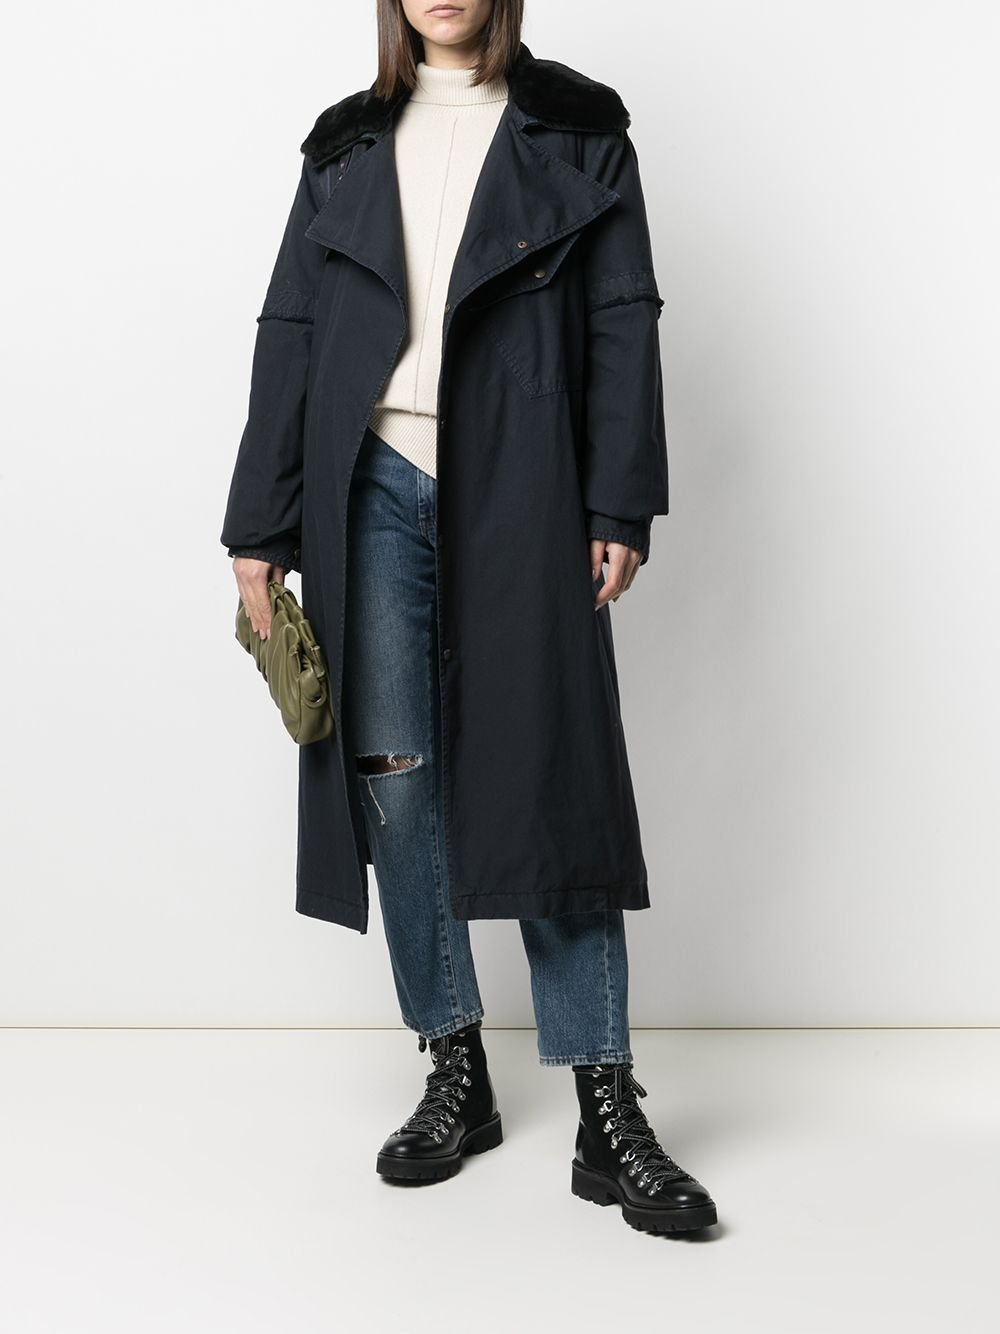 NICK WOOSTER CAPSULE UNISEX TRENCH